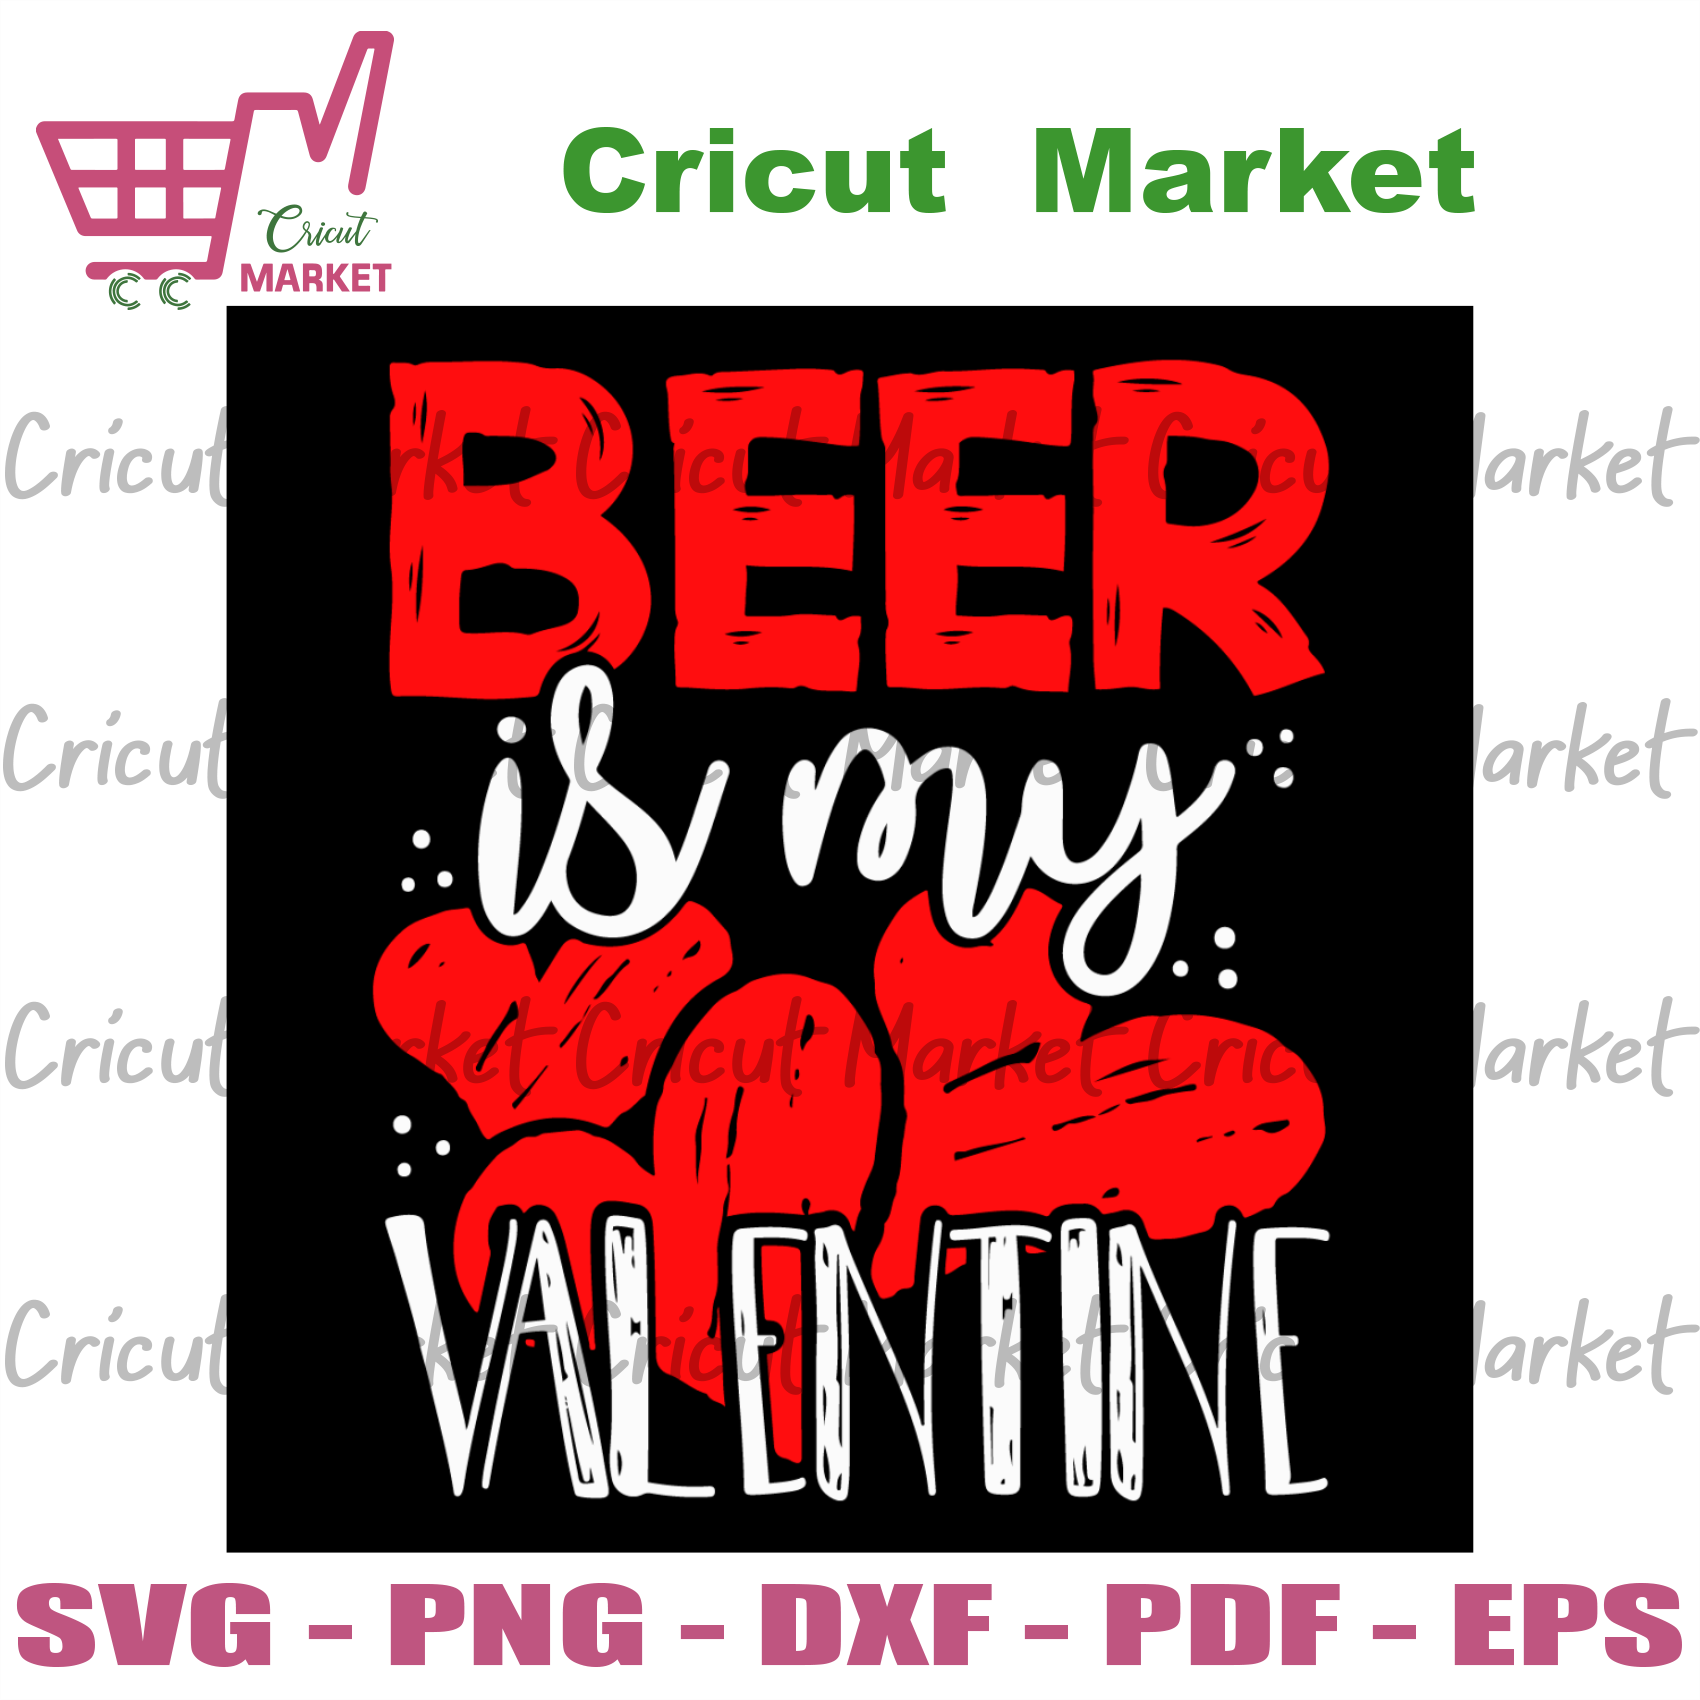 Beer Is My Valentine Svg, Valentine Svg, Beer Svg, Beer Love Svg, Love Svg, Valentine Beer Svg, Love Gifts Svg, Love Beer Svg, Hearts Svg, Sweet Hearts Svg,Couple Gifts Svg, Valentine Day Svg